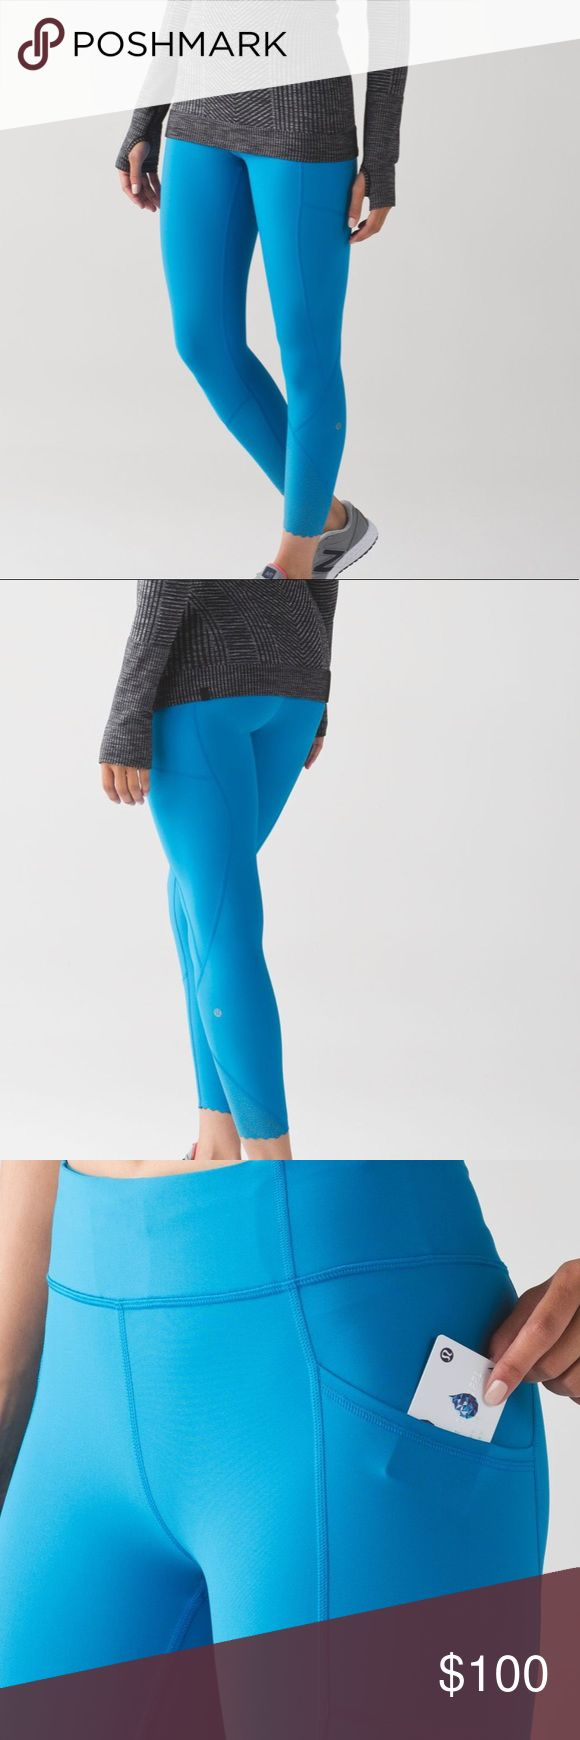 LuluLemon Athletica Tight Stuff Tight II LuluLemon Athletica Tight Stuff Tight II Color- sky blue  Size - 10 (large)  Brand new with tags!! Offers welcome. lululemon athletica Pants Leggings